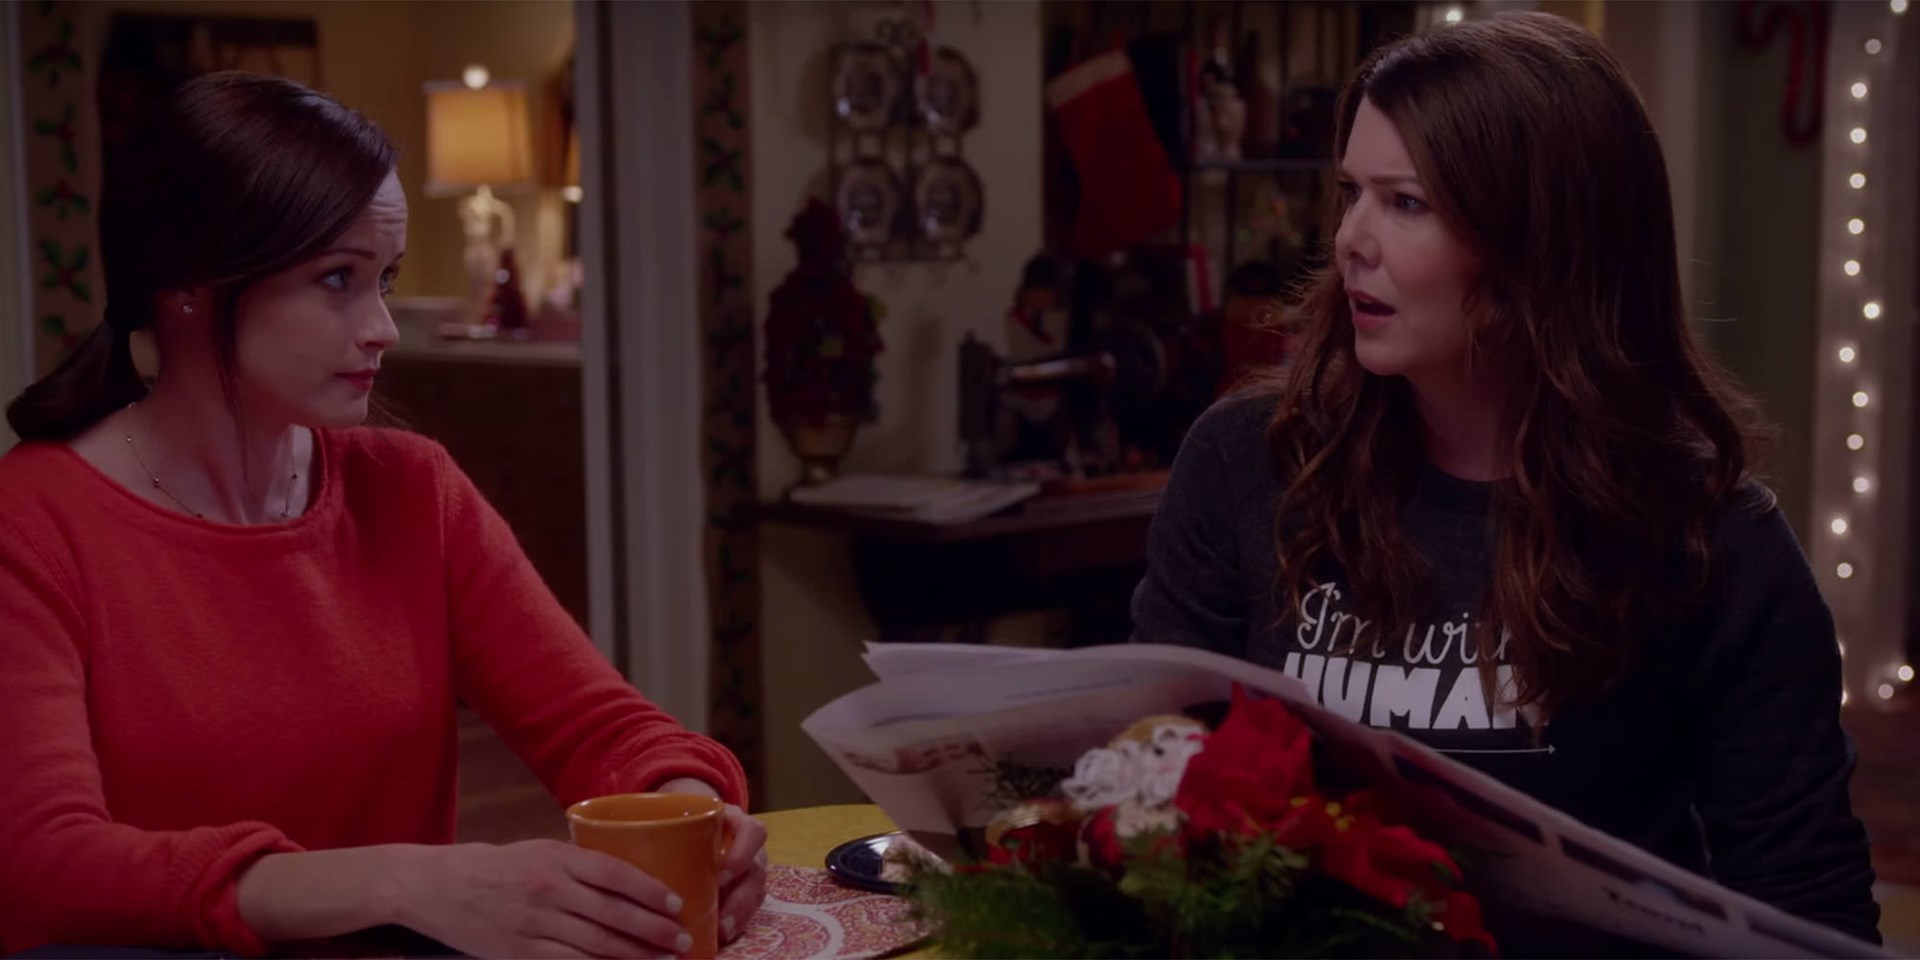 Why a Gilmore Girl Can't Get a Job - Foundation for Economic Education